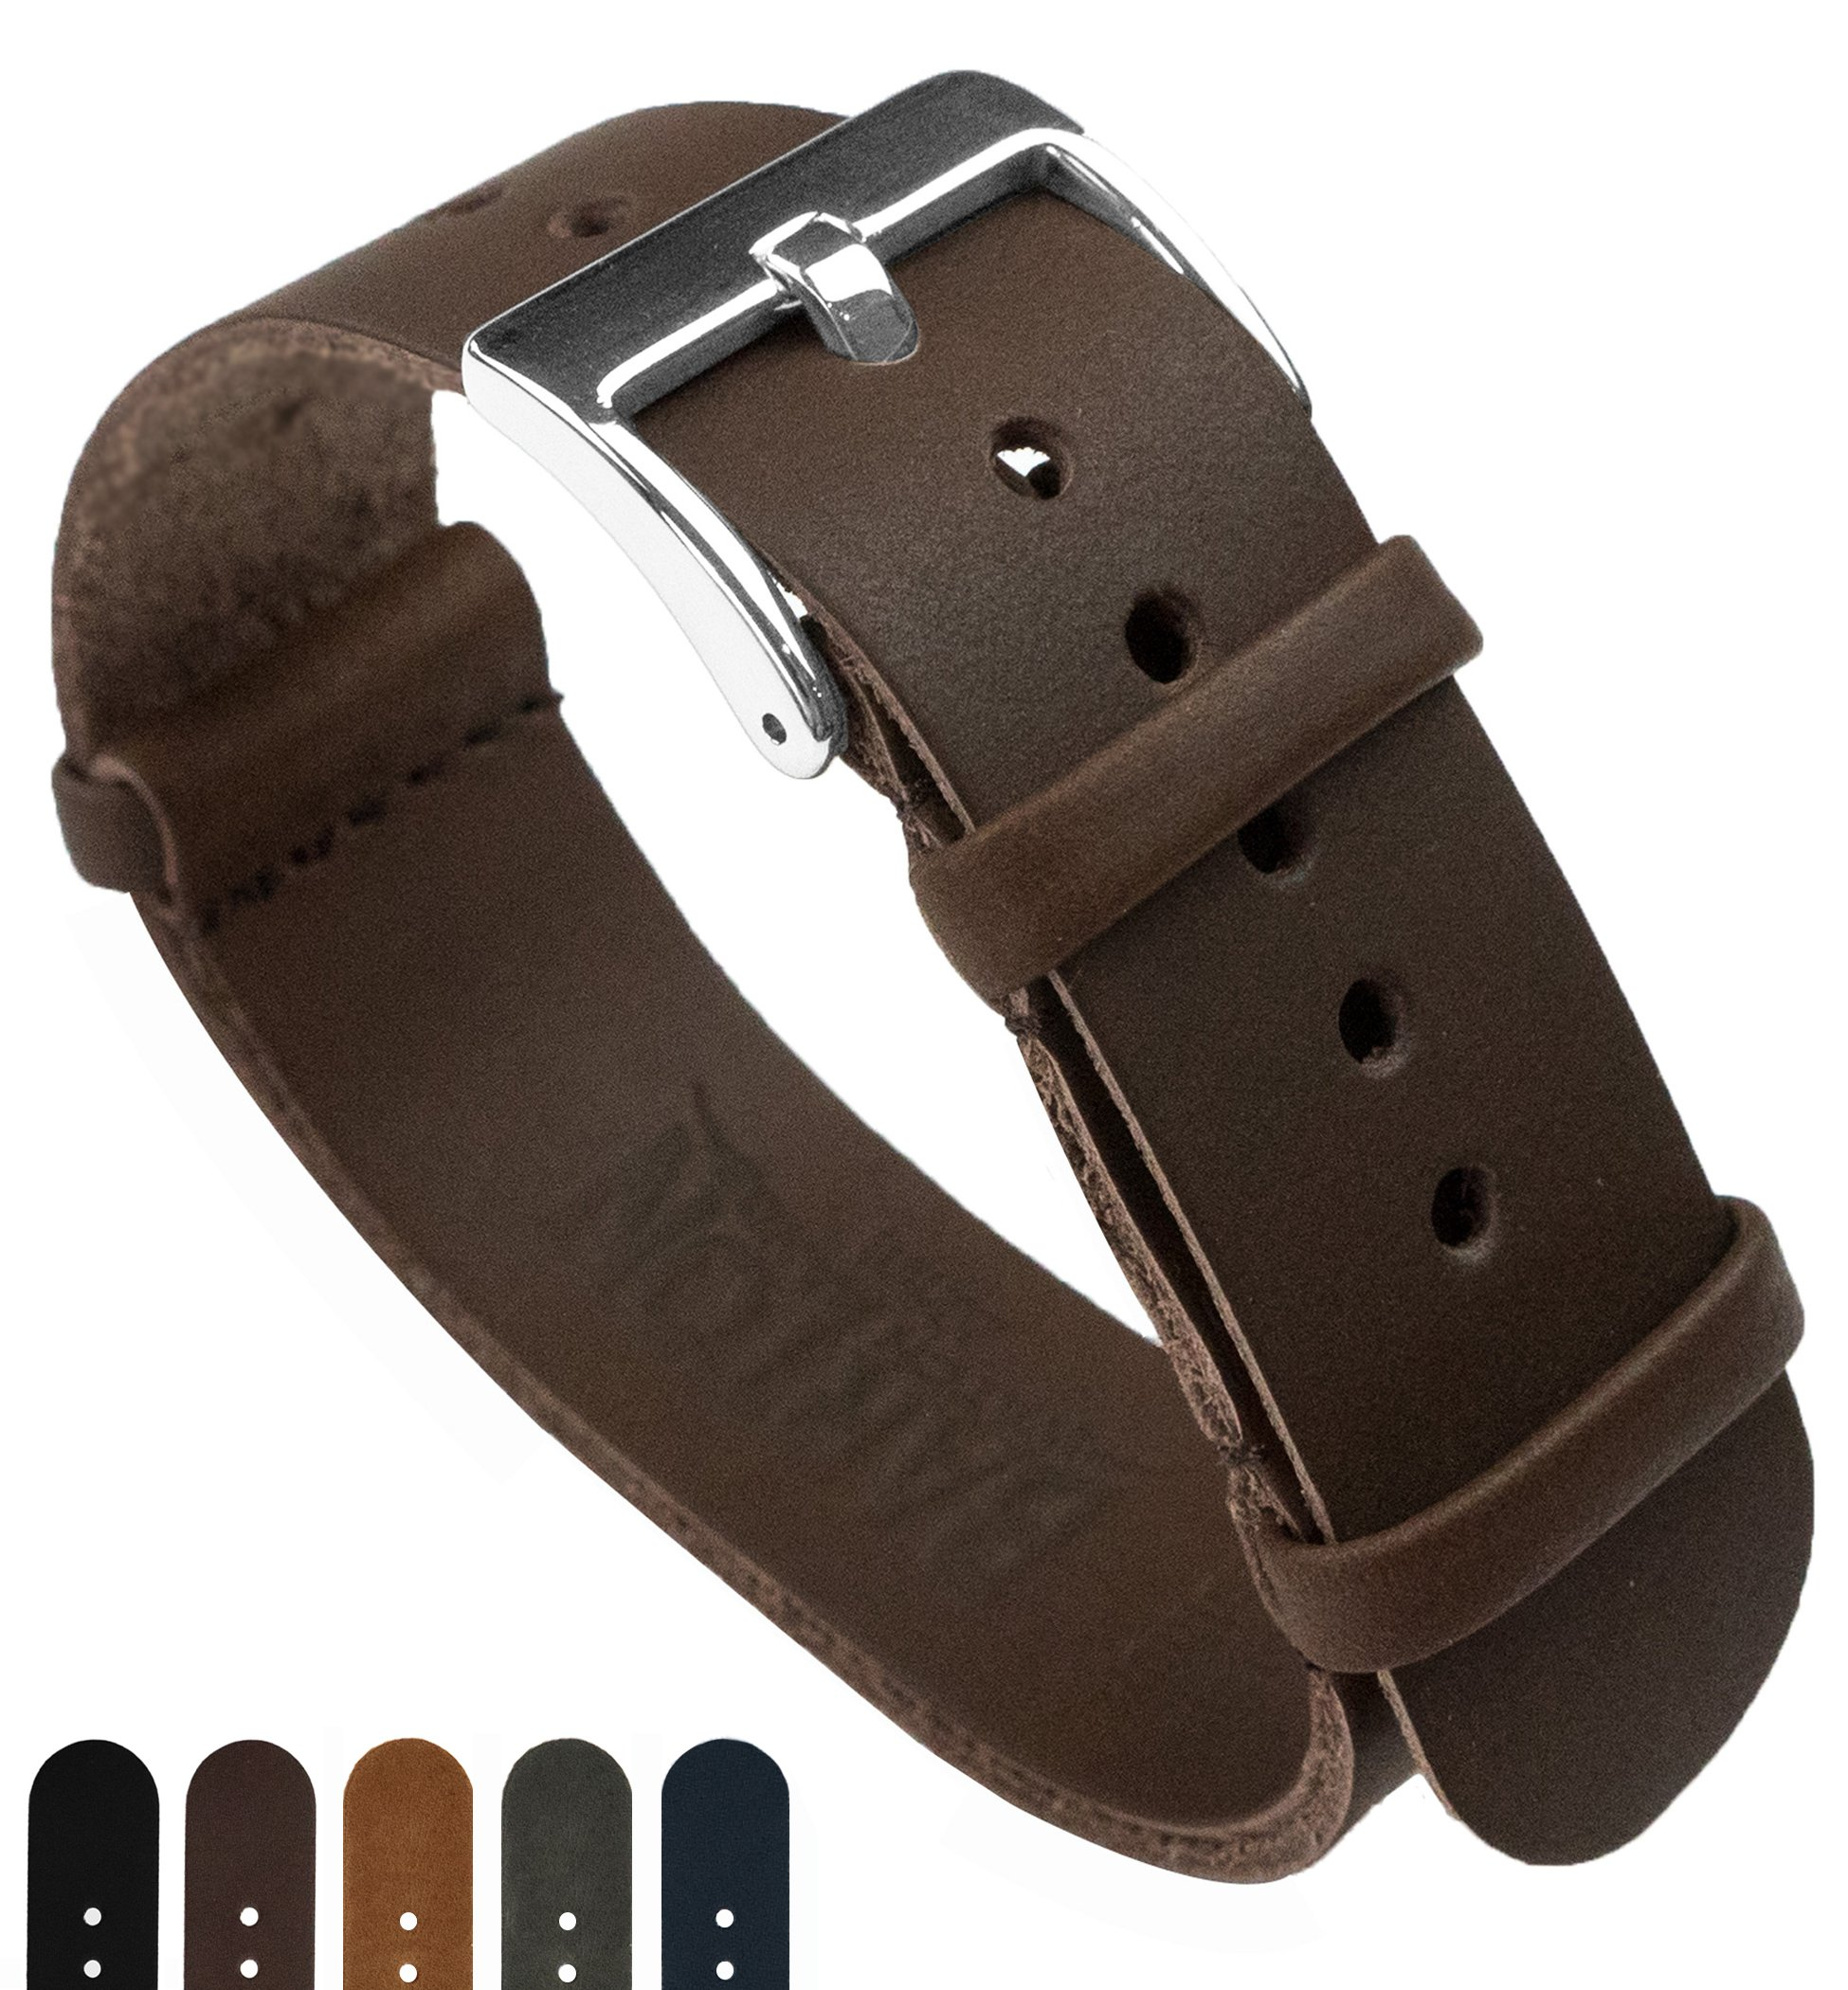 Barton Leather NATO Style Watch Straps - Choose Color, Length & Width - Saddle Brown 20mm Standard Band